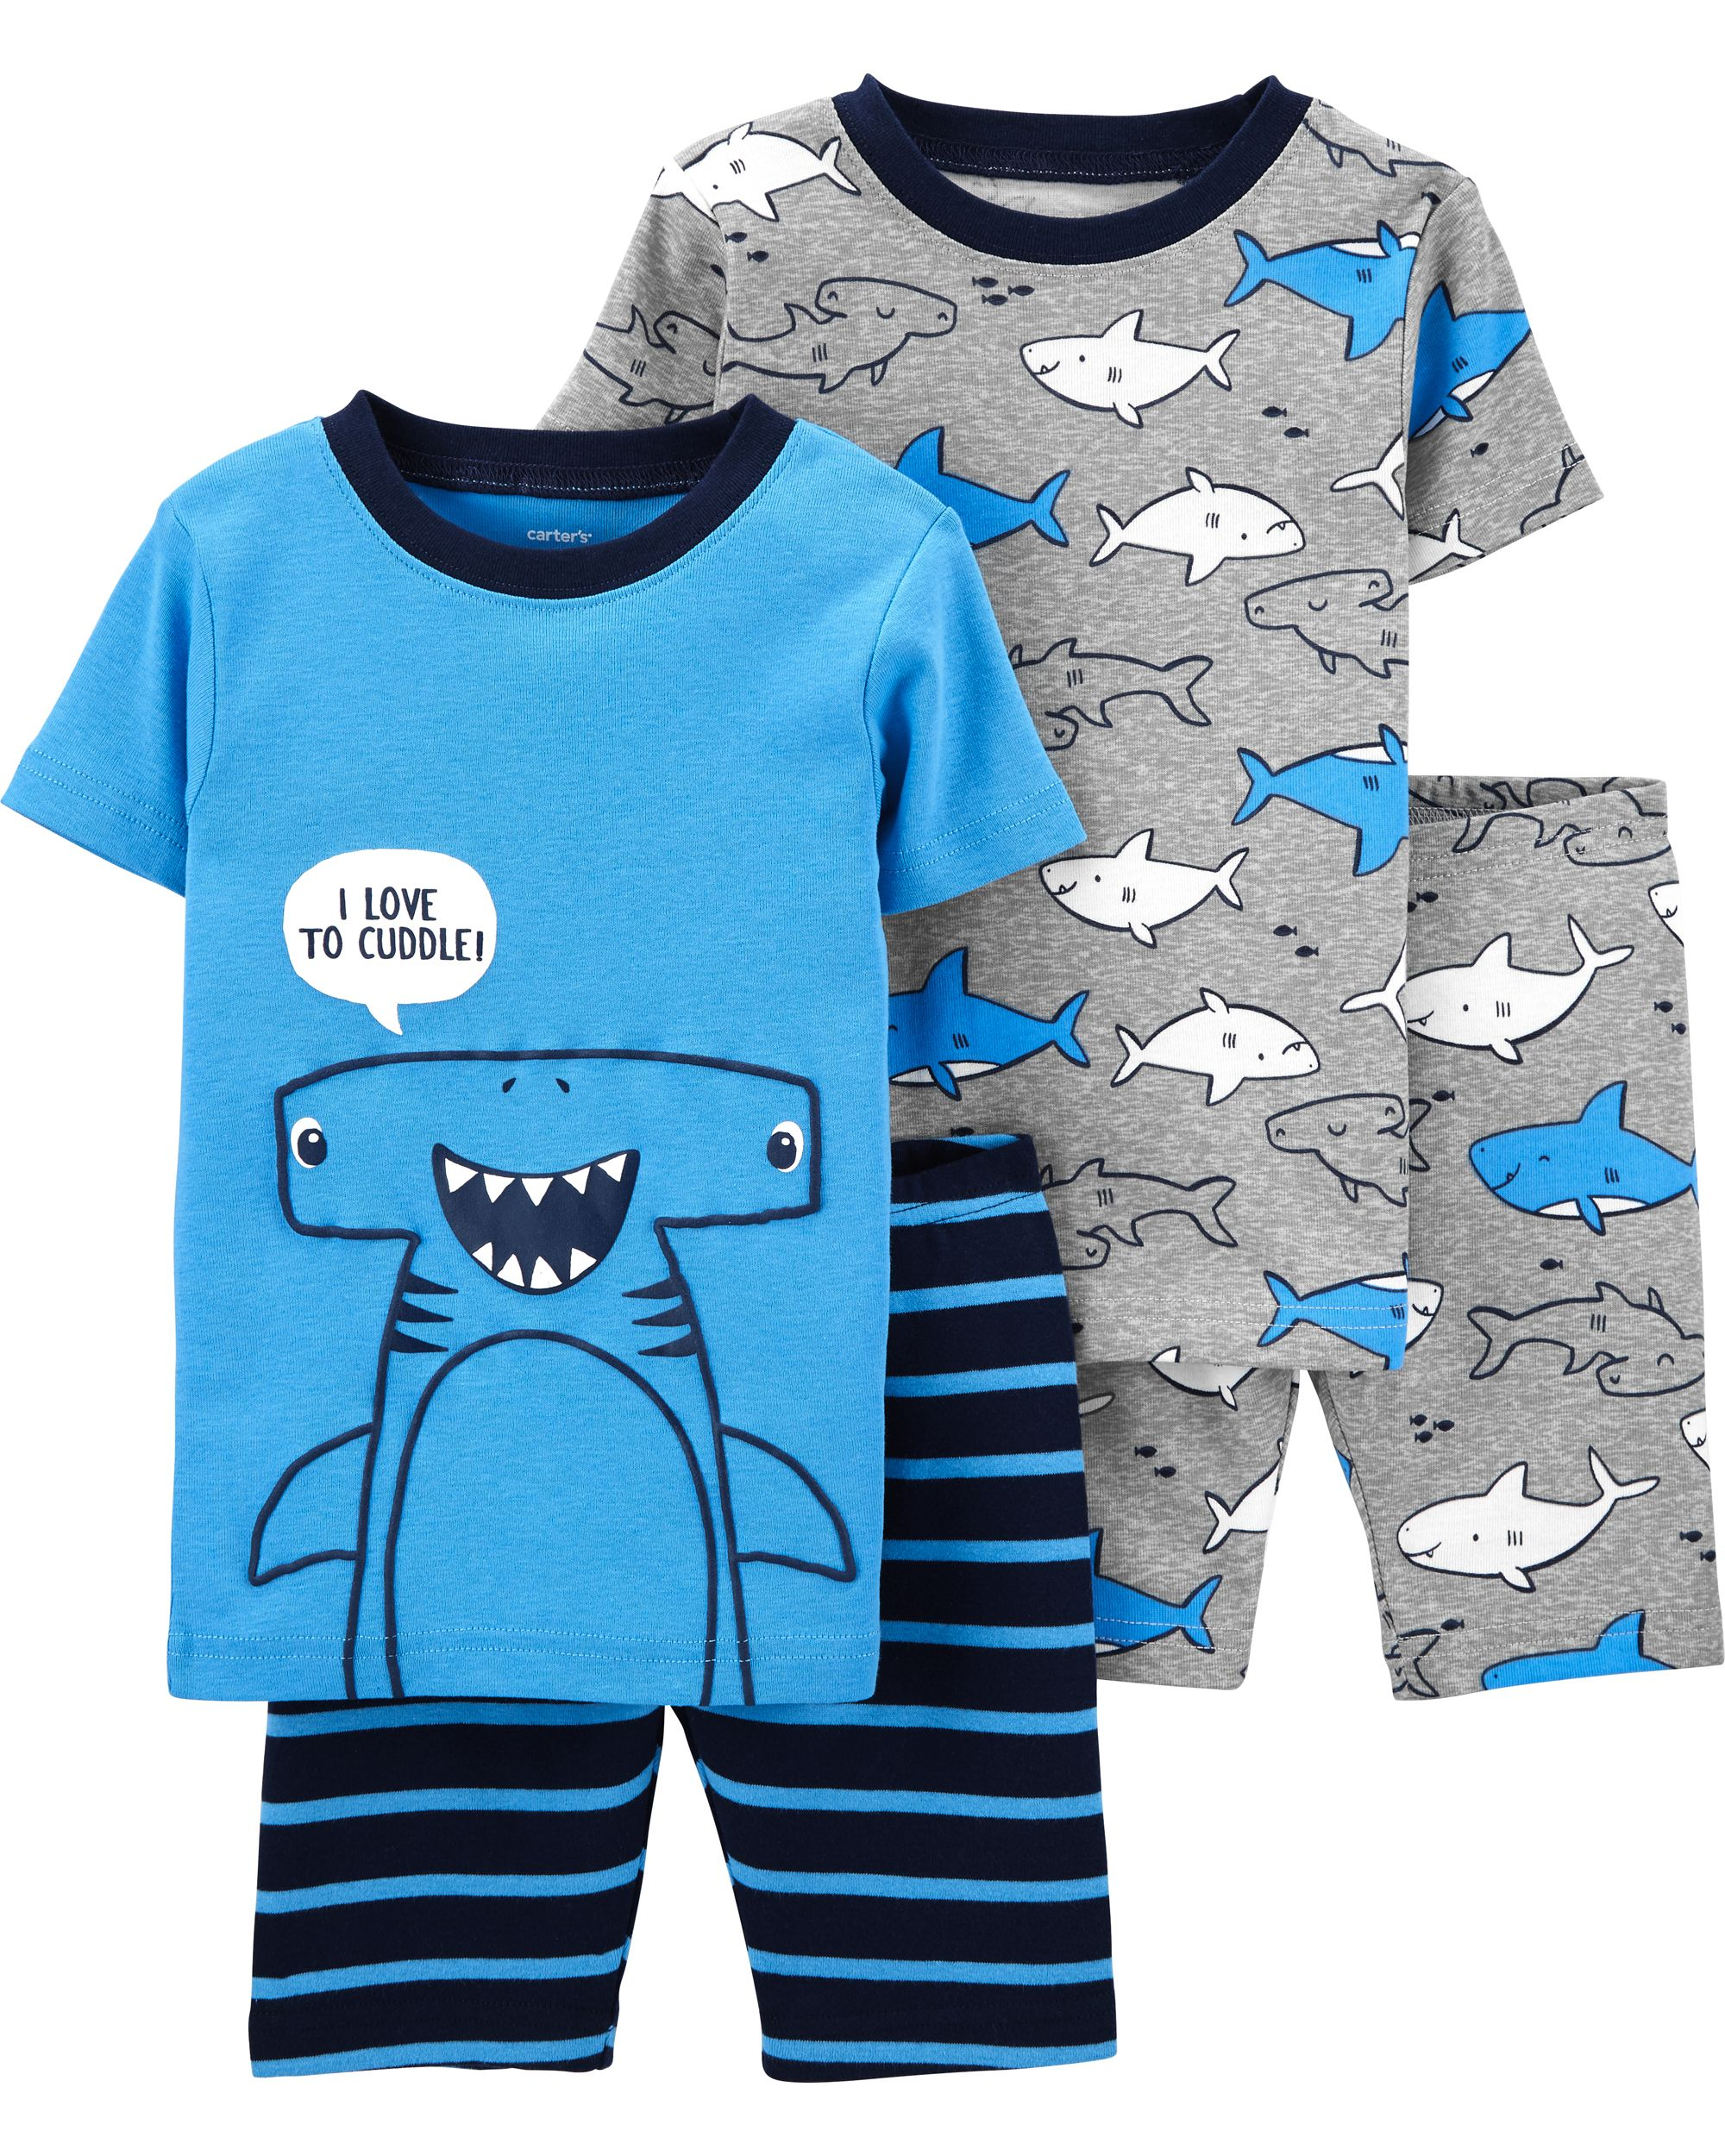 NEW 2020 Baby Boys Girls 100/% Cotton Whale /& Octopus Long Pyjamas Set